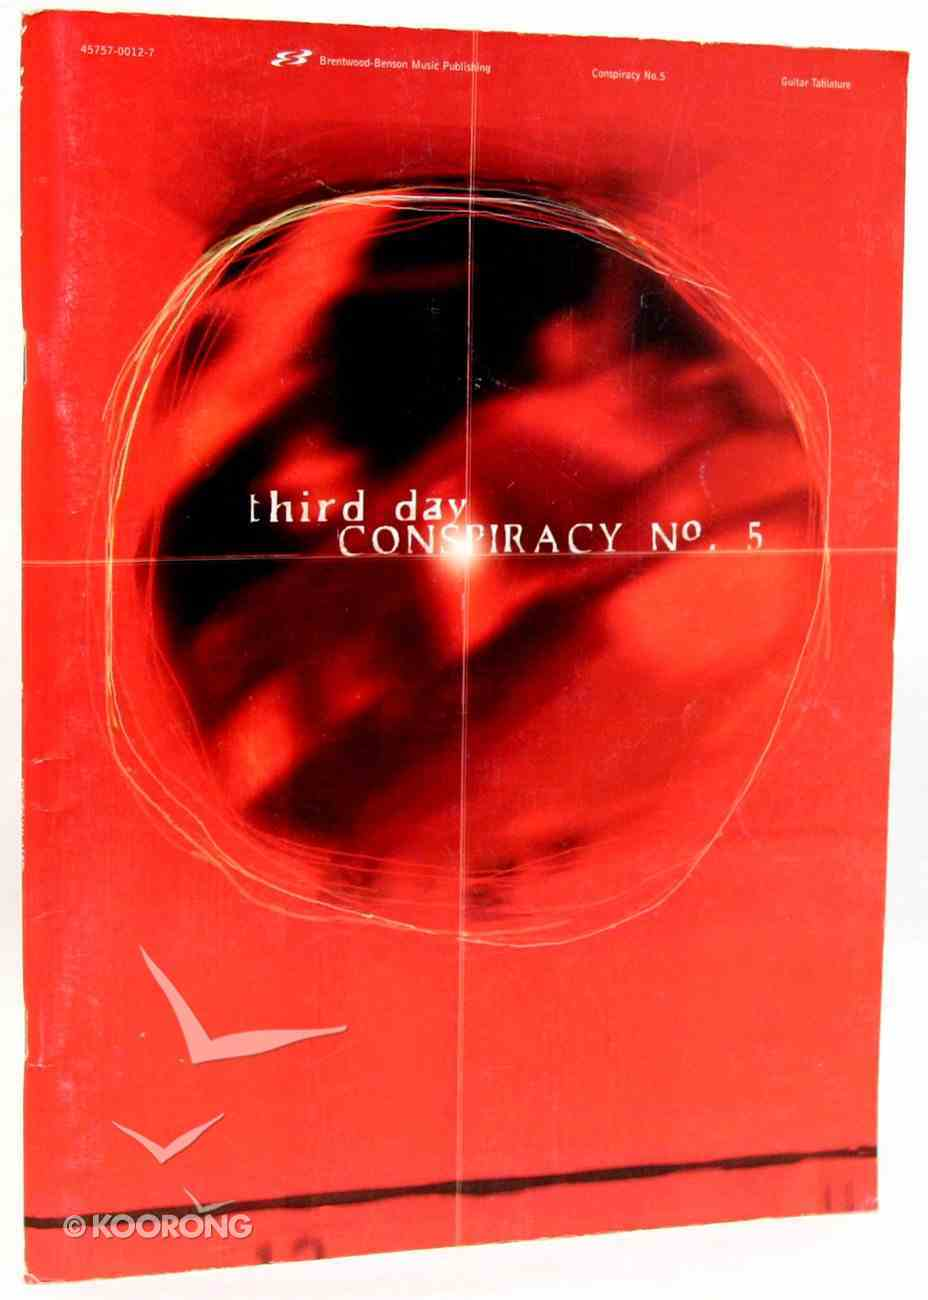 Conspiracy No #5 (Music Book) (Songbook) Paperback